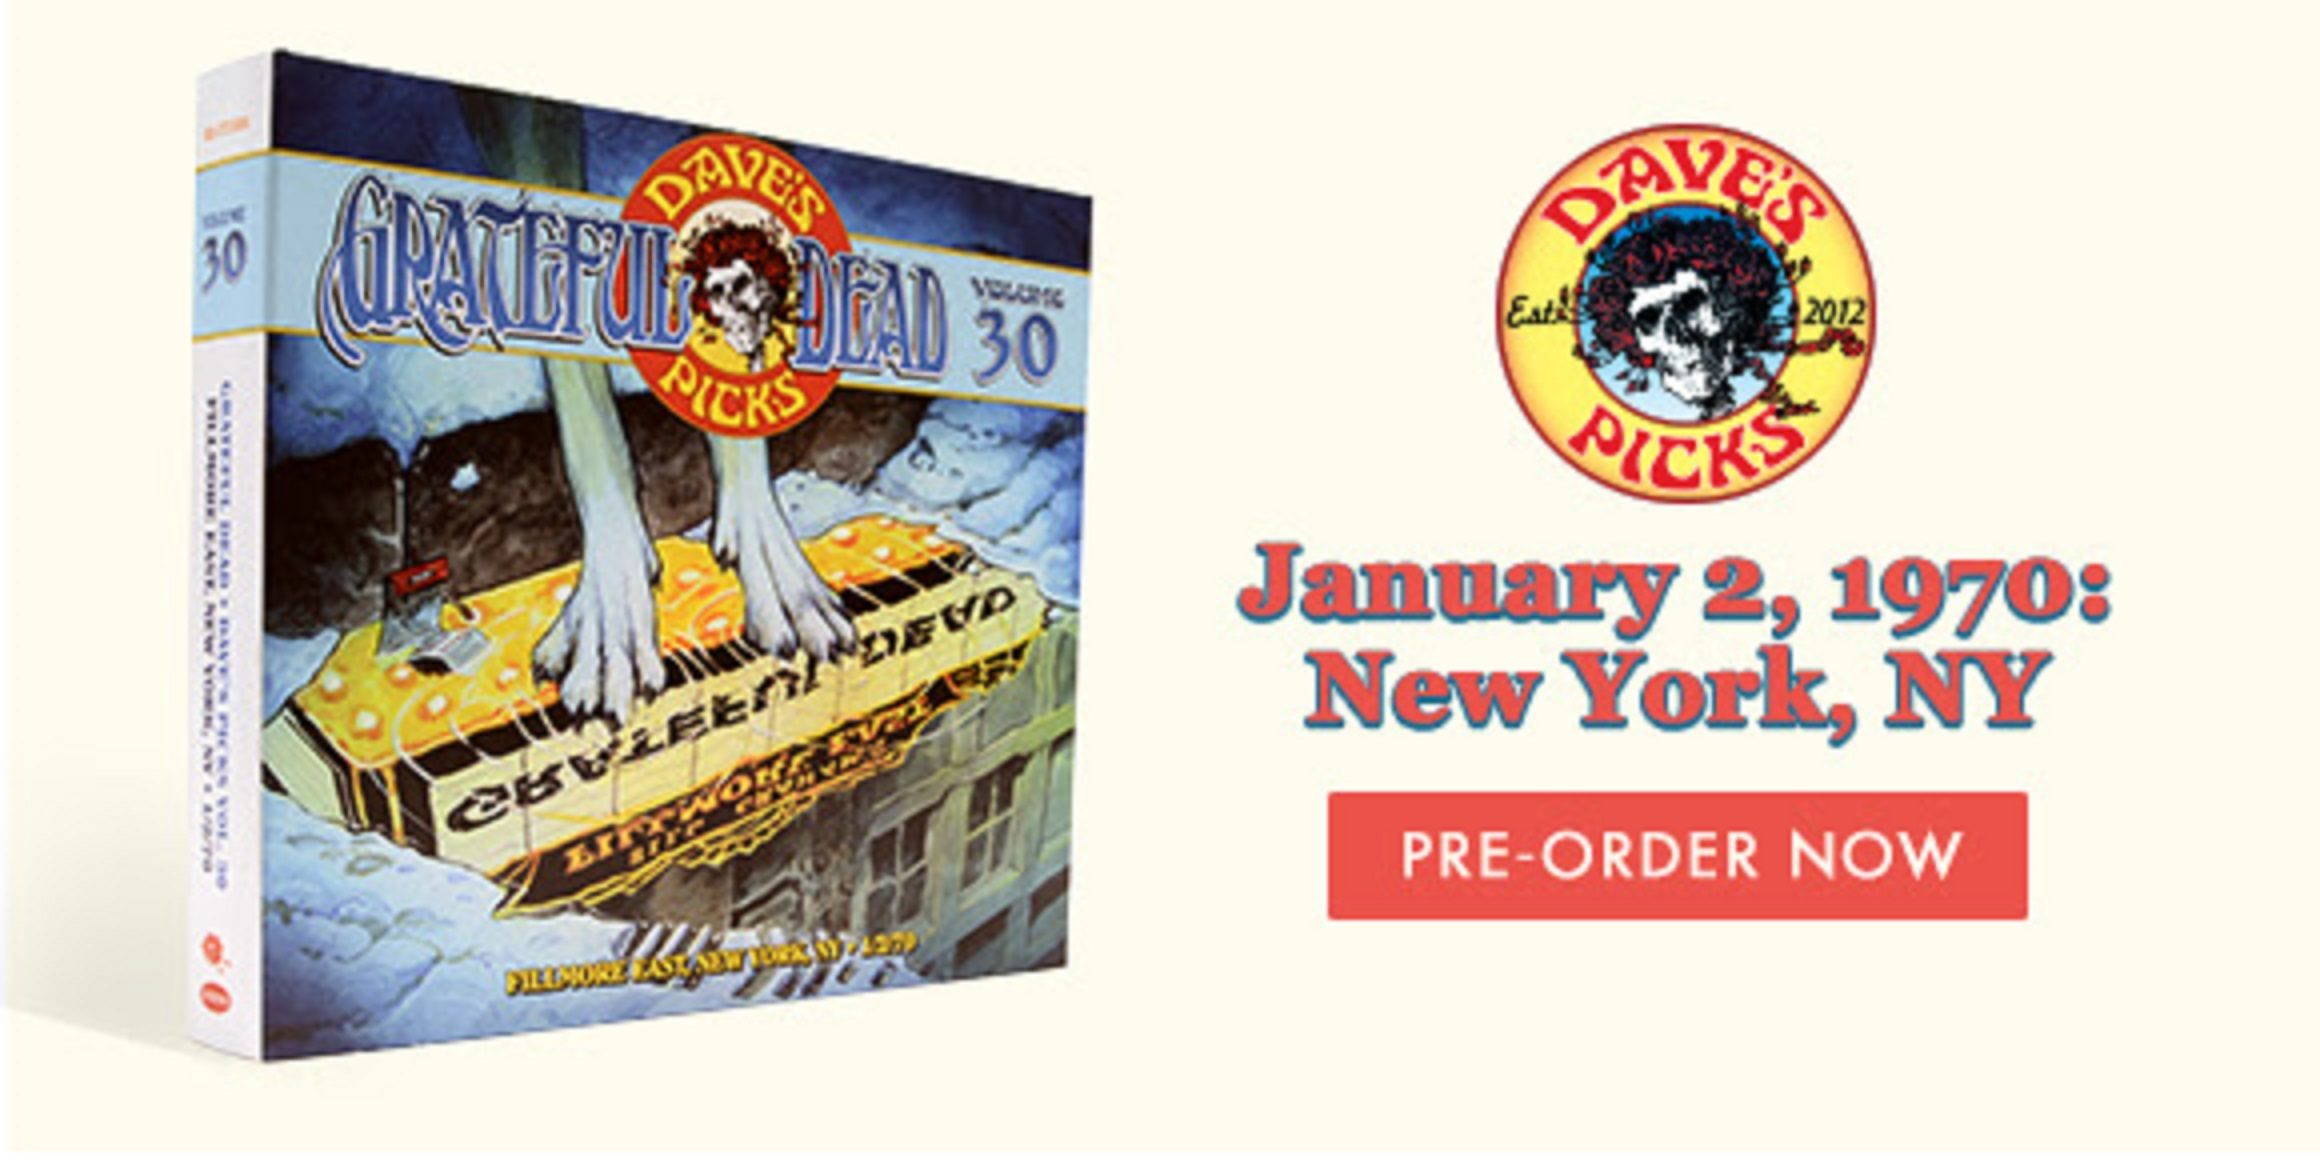 Now Available For Pre-Order: Dave's Picks Volume 30